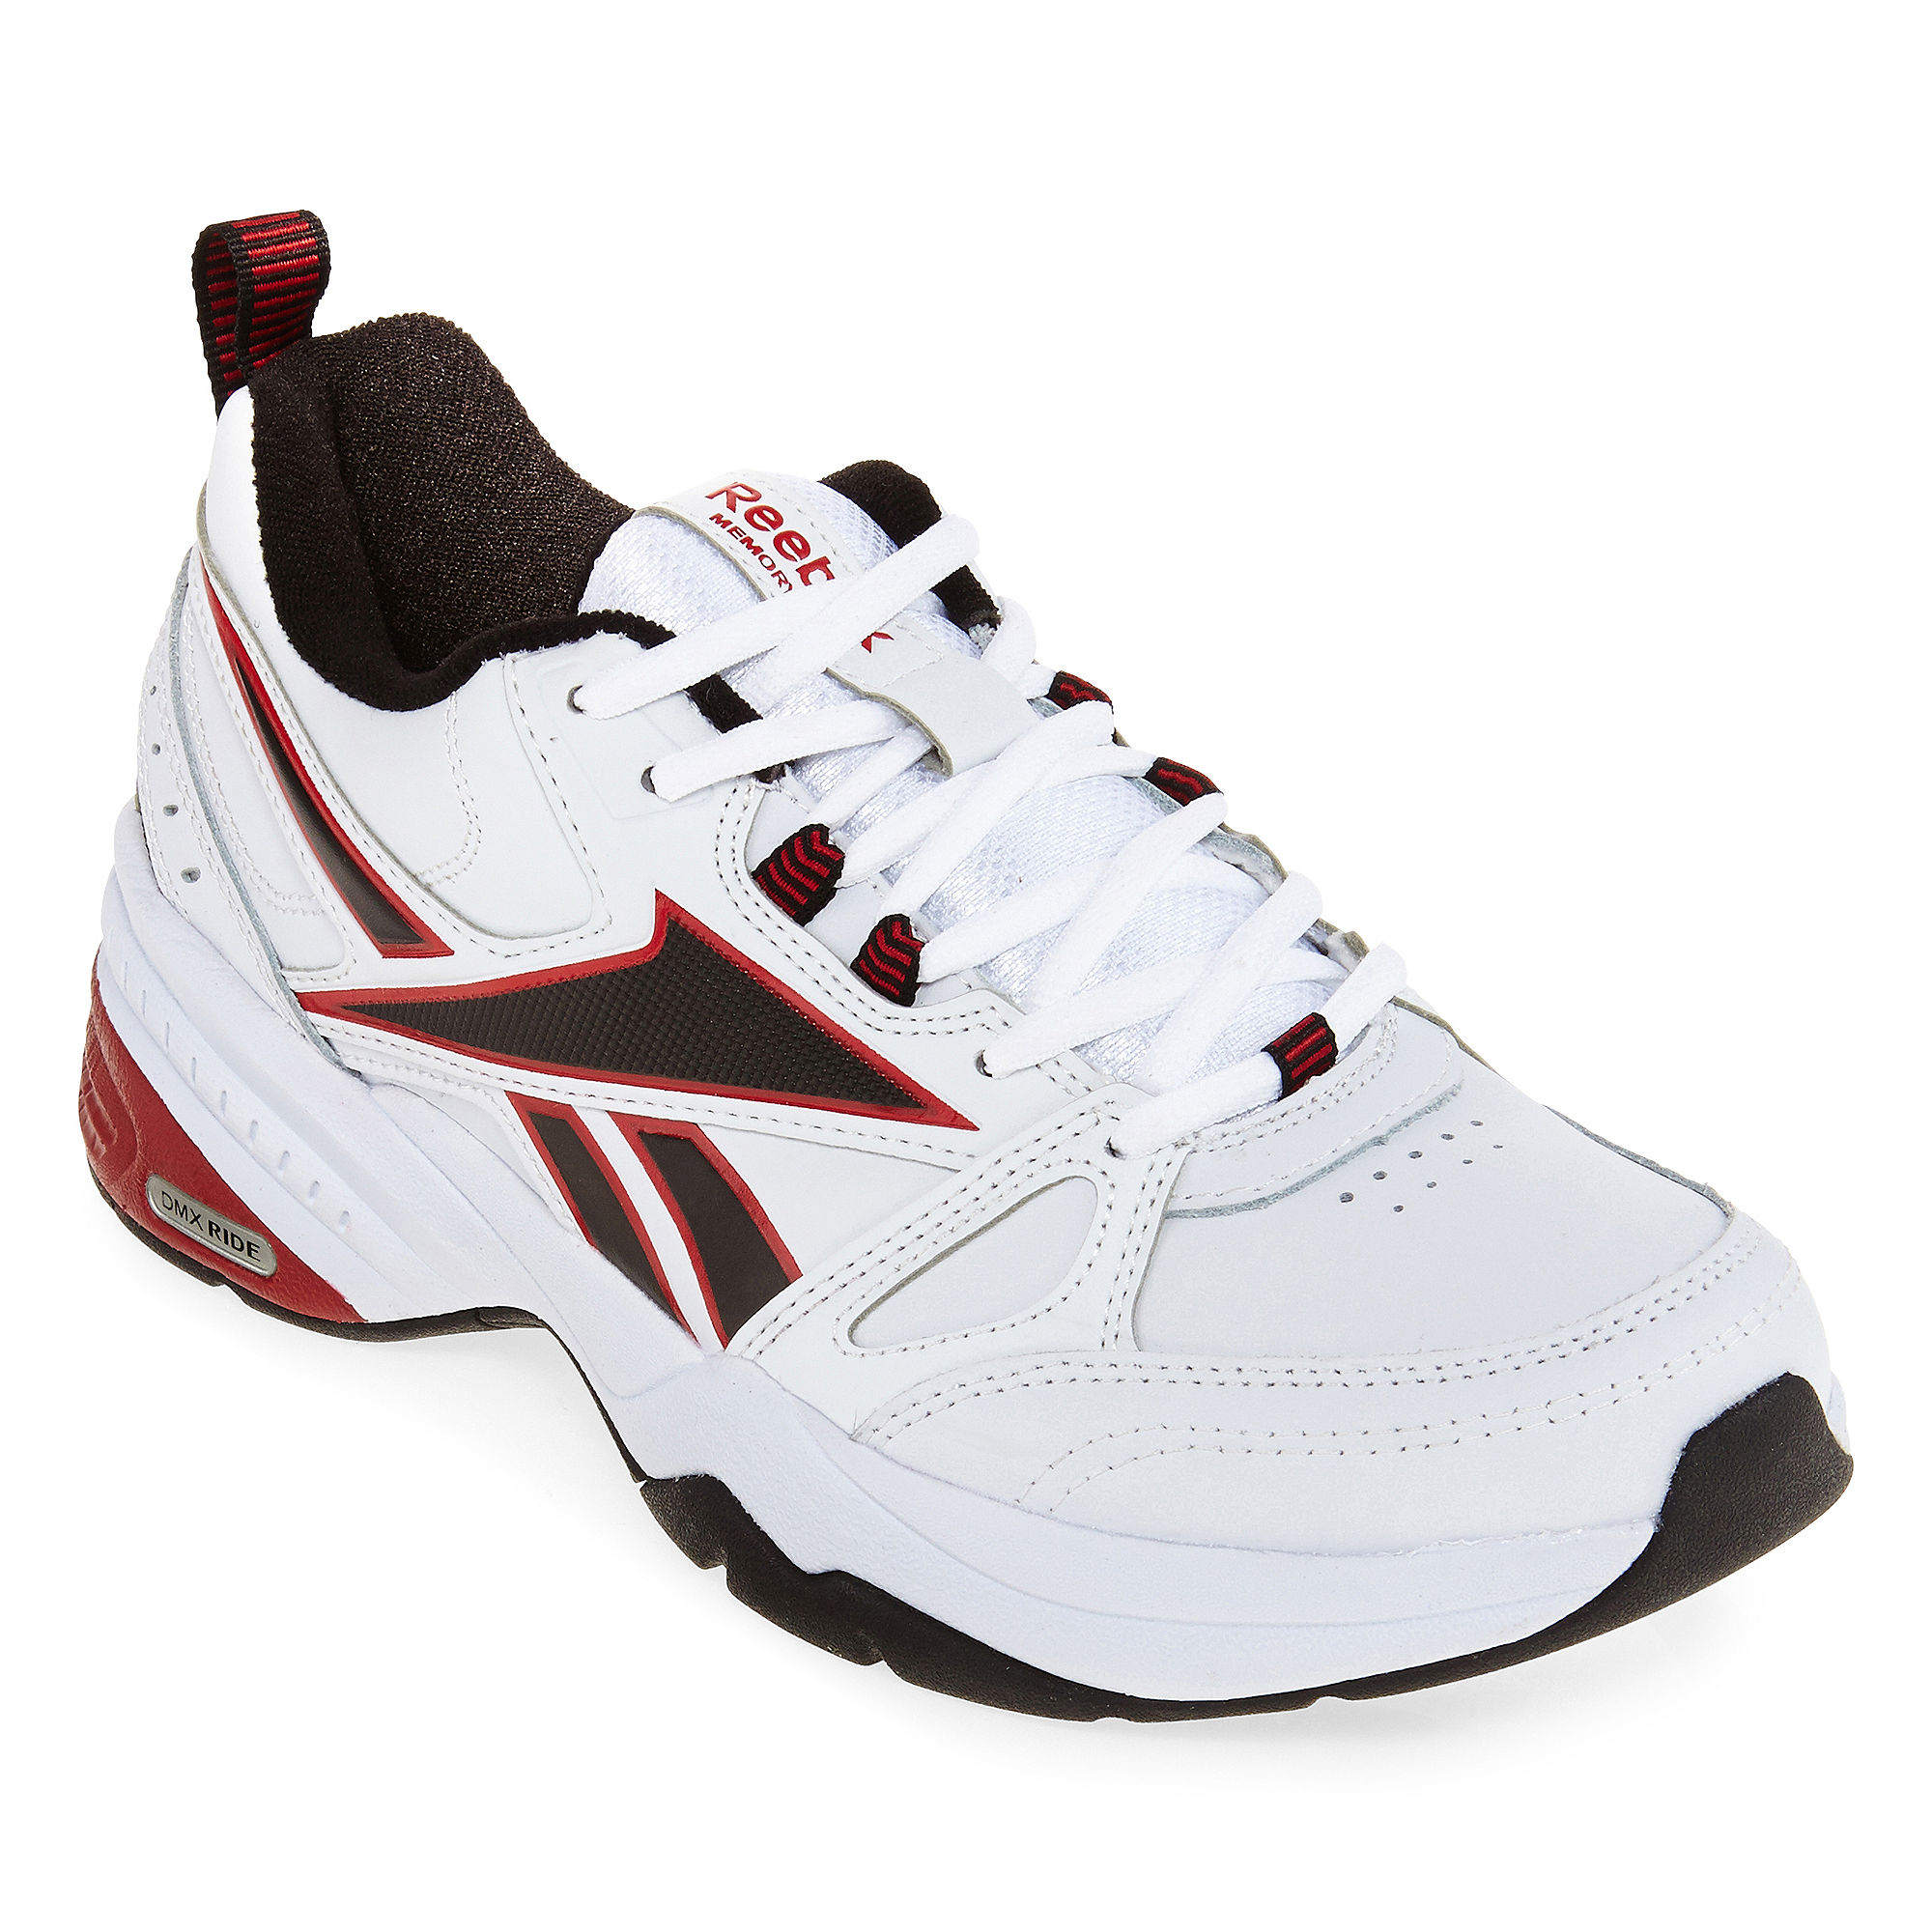 UPC 886407960082 - Reebok Royal Trainer MT Mens Athletic Shoes ... cb2ea3b2b